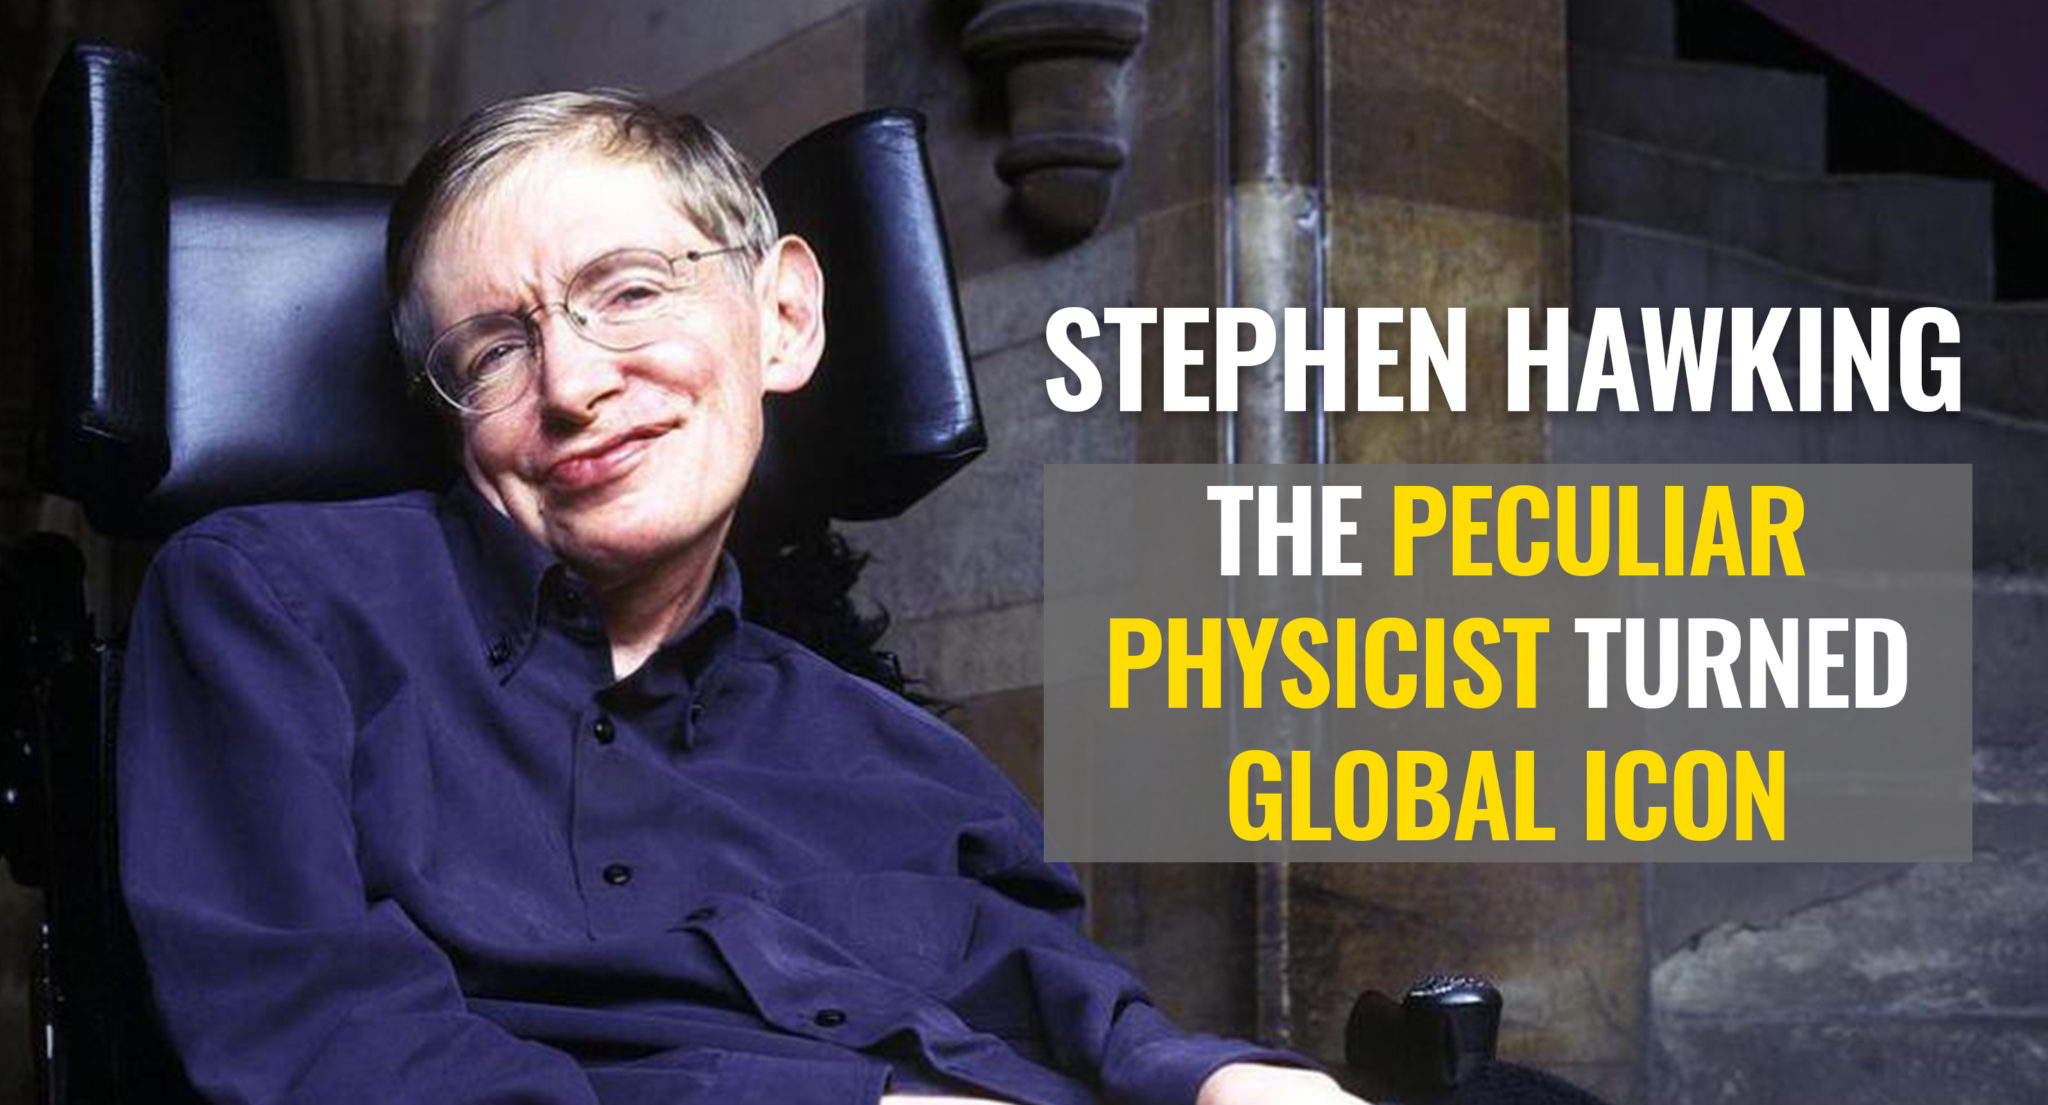 biography of stephen hawkings Stephen hawking is one of the most recognisable figures in modern science his book 'a brief history of time' explained modern physics to the public.